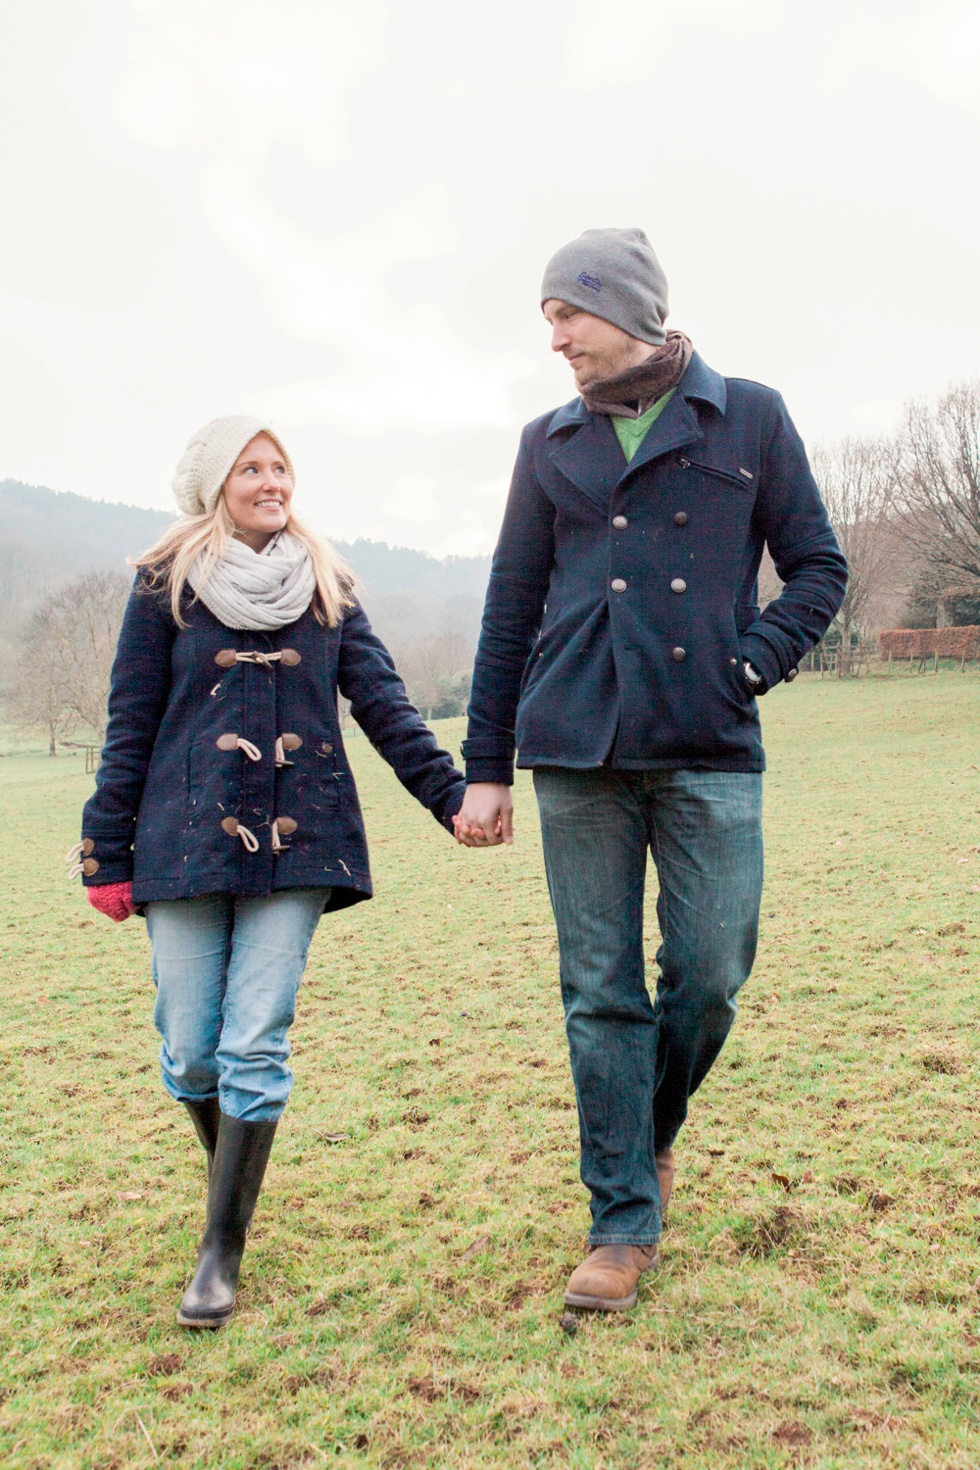 PRE-WEDDING-ENGAGEMENT-SHOOT-COUNTRYSIDE-0015